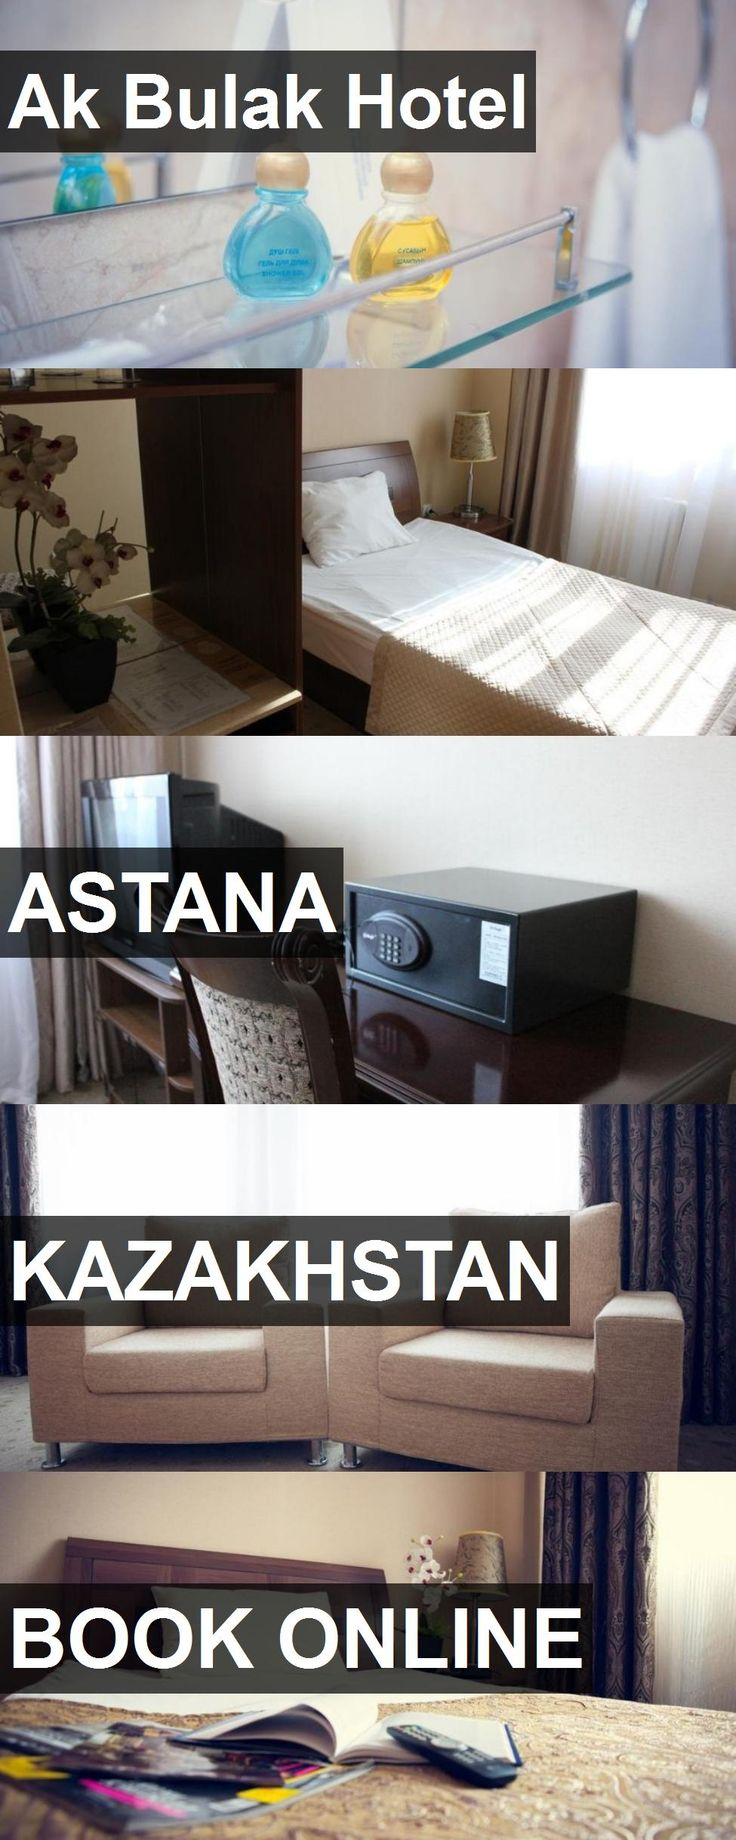 Hotel Ak Bulak Hotel in Astana, Kazakhstan. For more information, photos, reviews and best prices please follow the link. #Kazakhstan #Astana #AkBulakHotel #hotel #travel #vacation